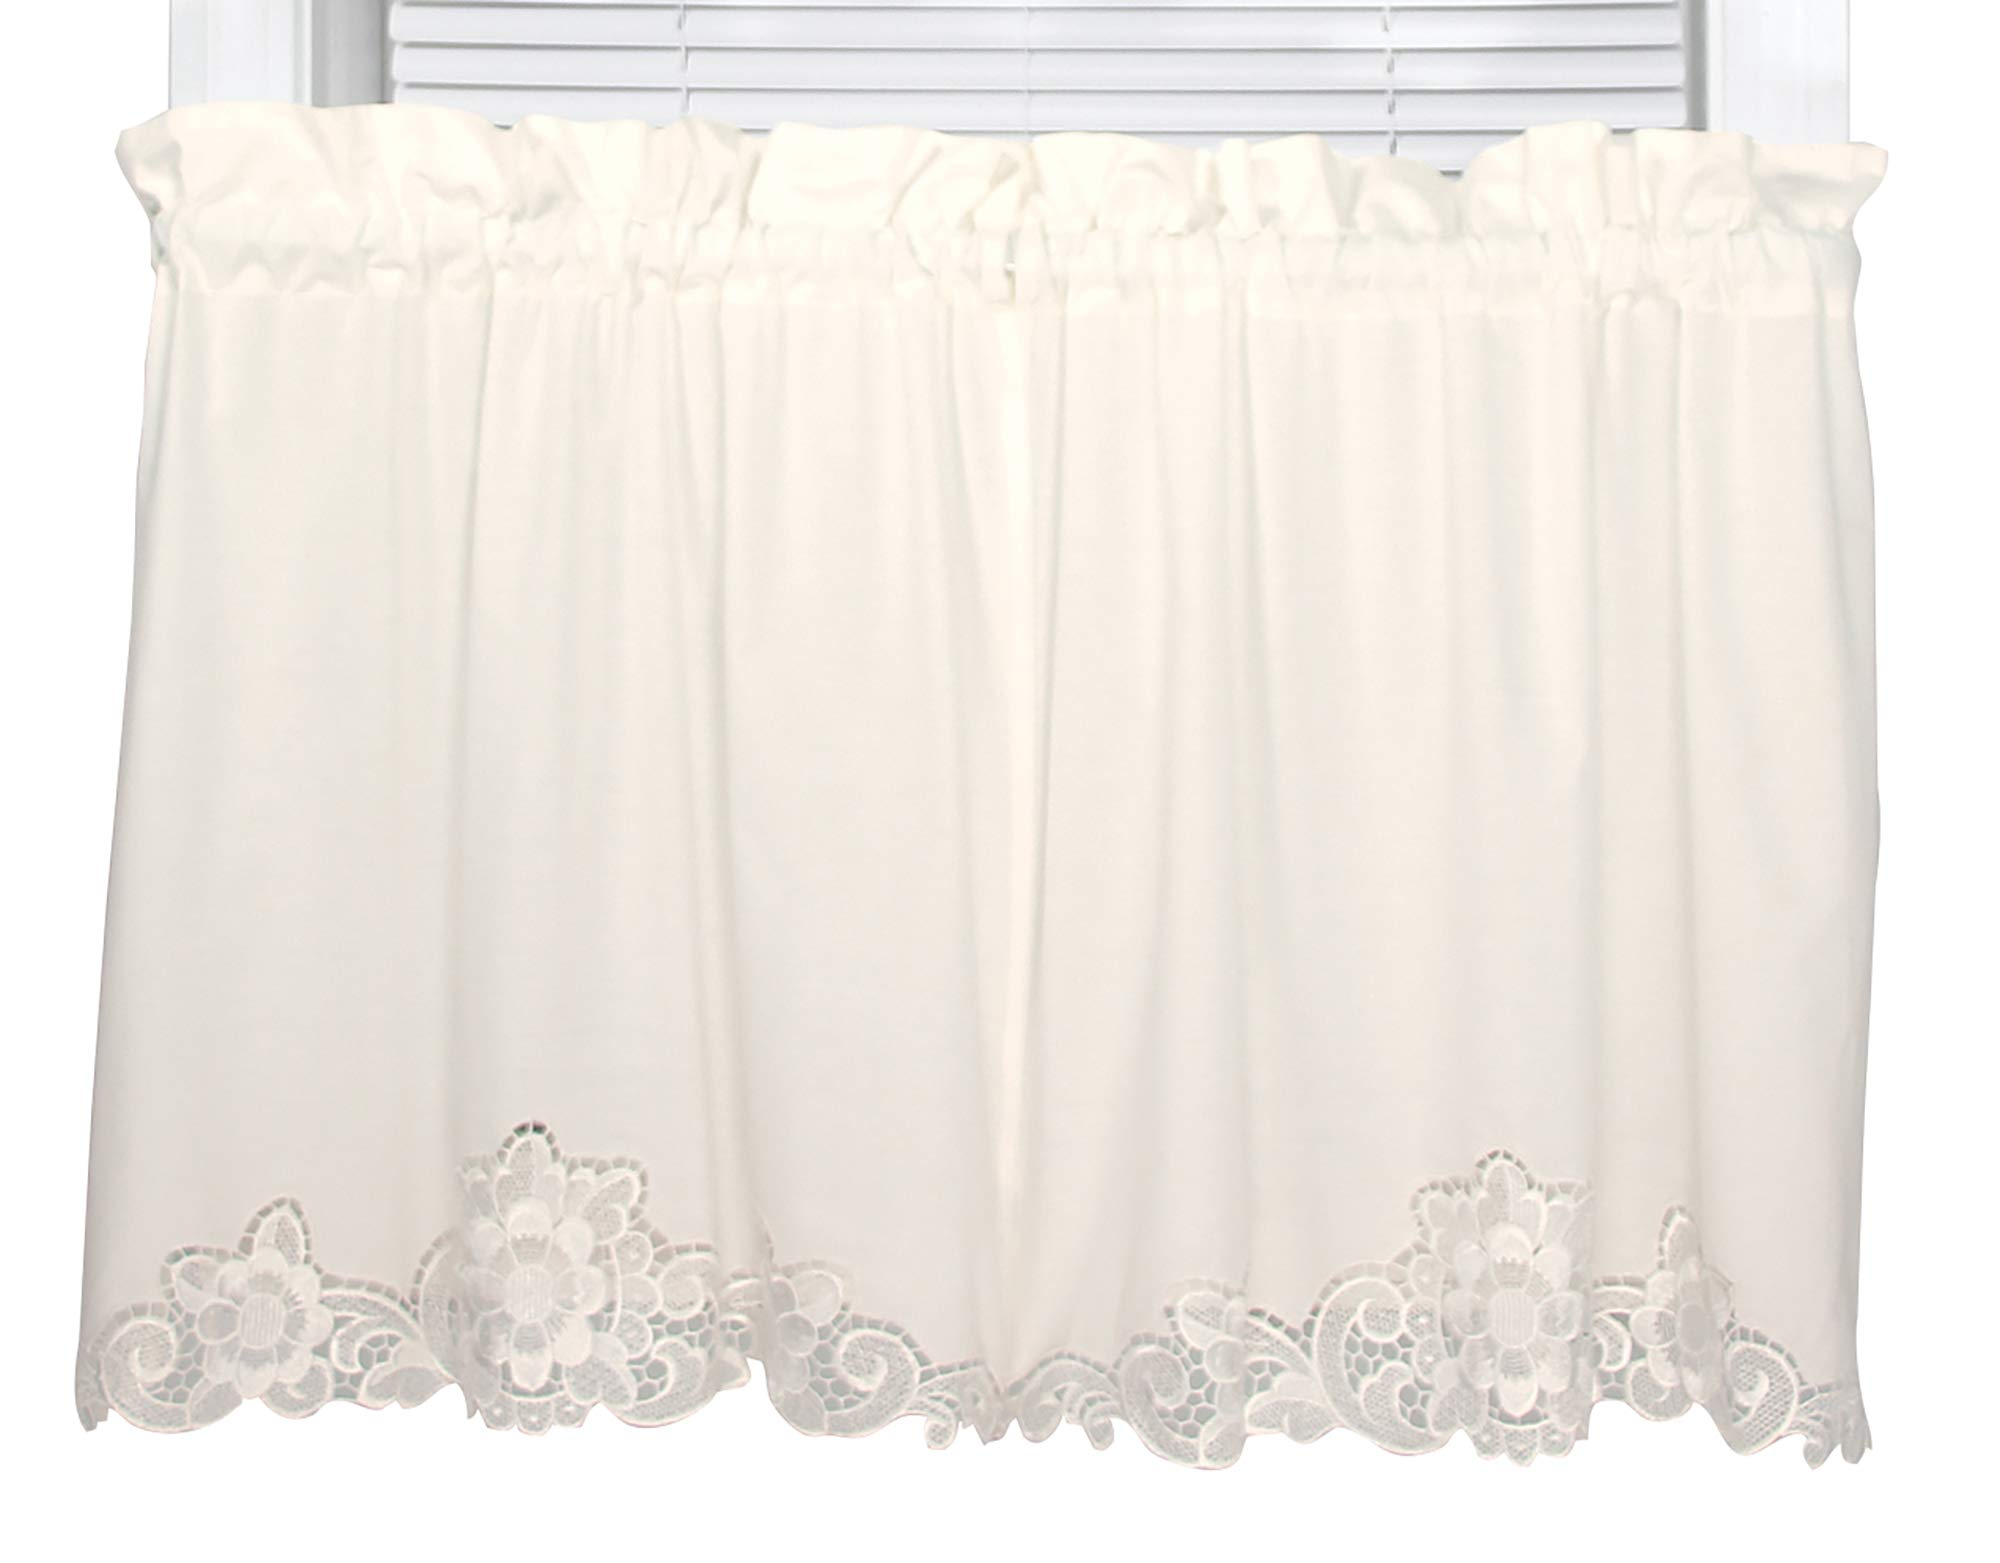 H.C. International Romance 60 Inches Wide x 30 Inches Long Cotton and Polyester Tier Curtain, Ecru by H&C International